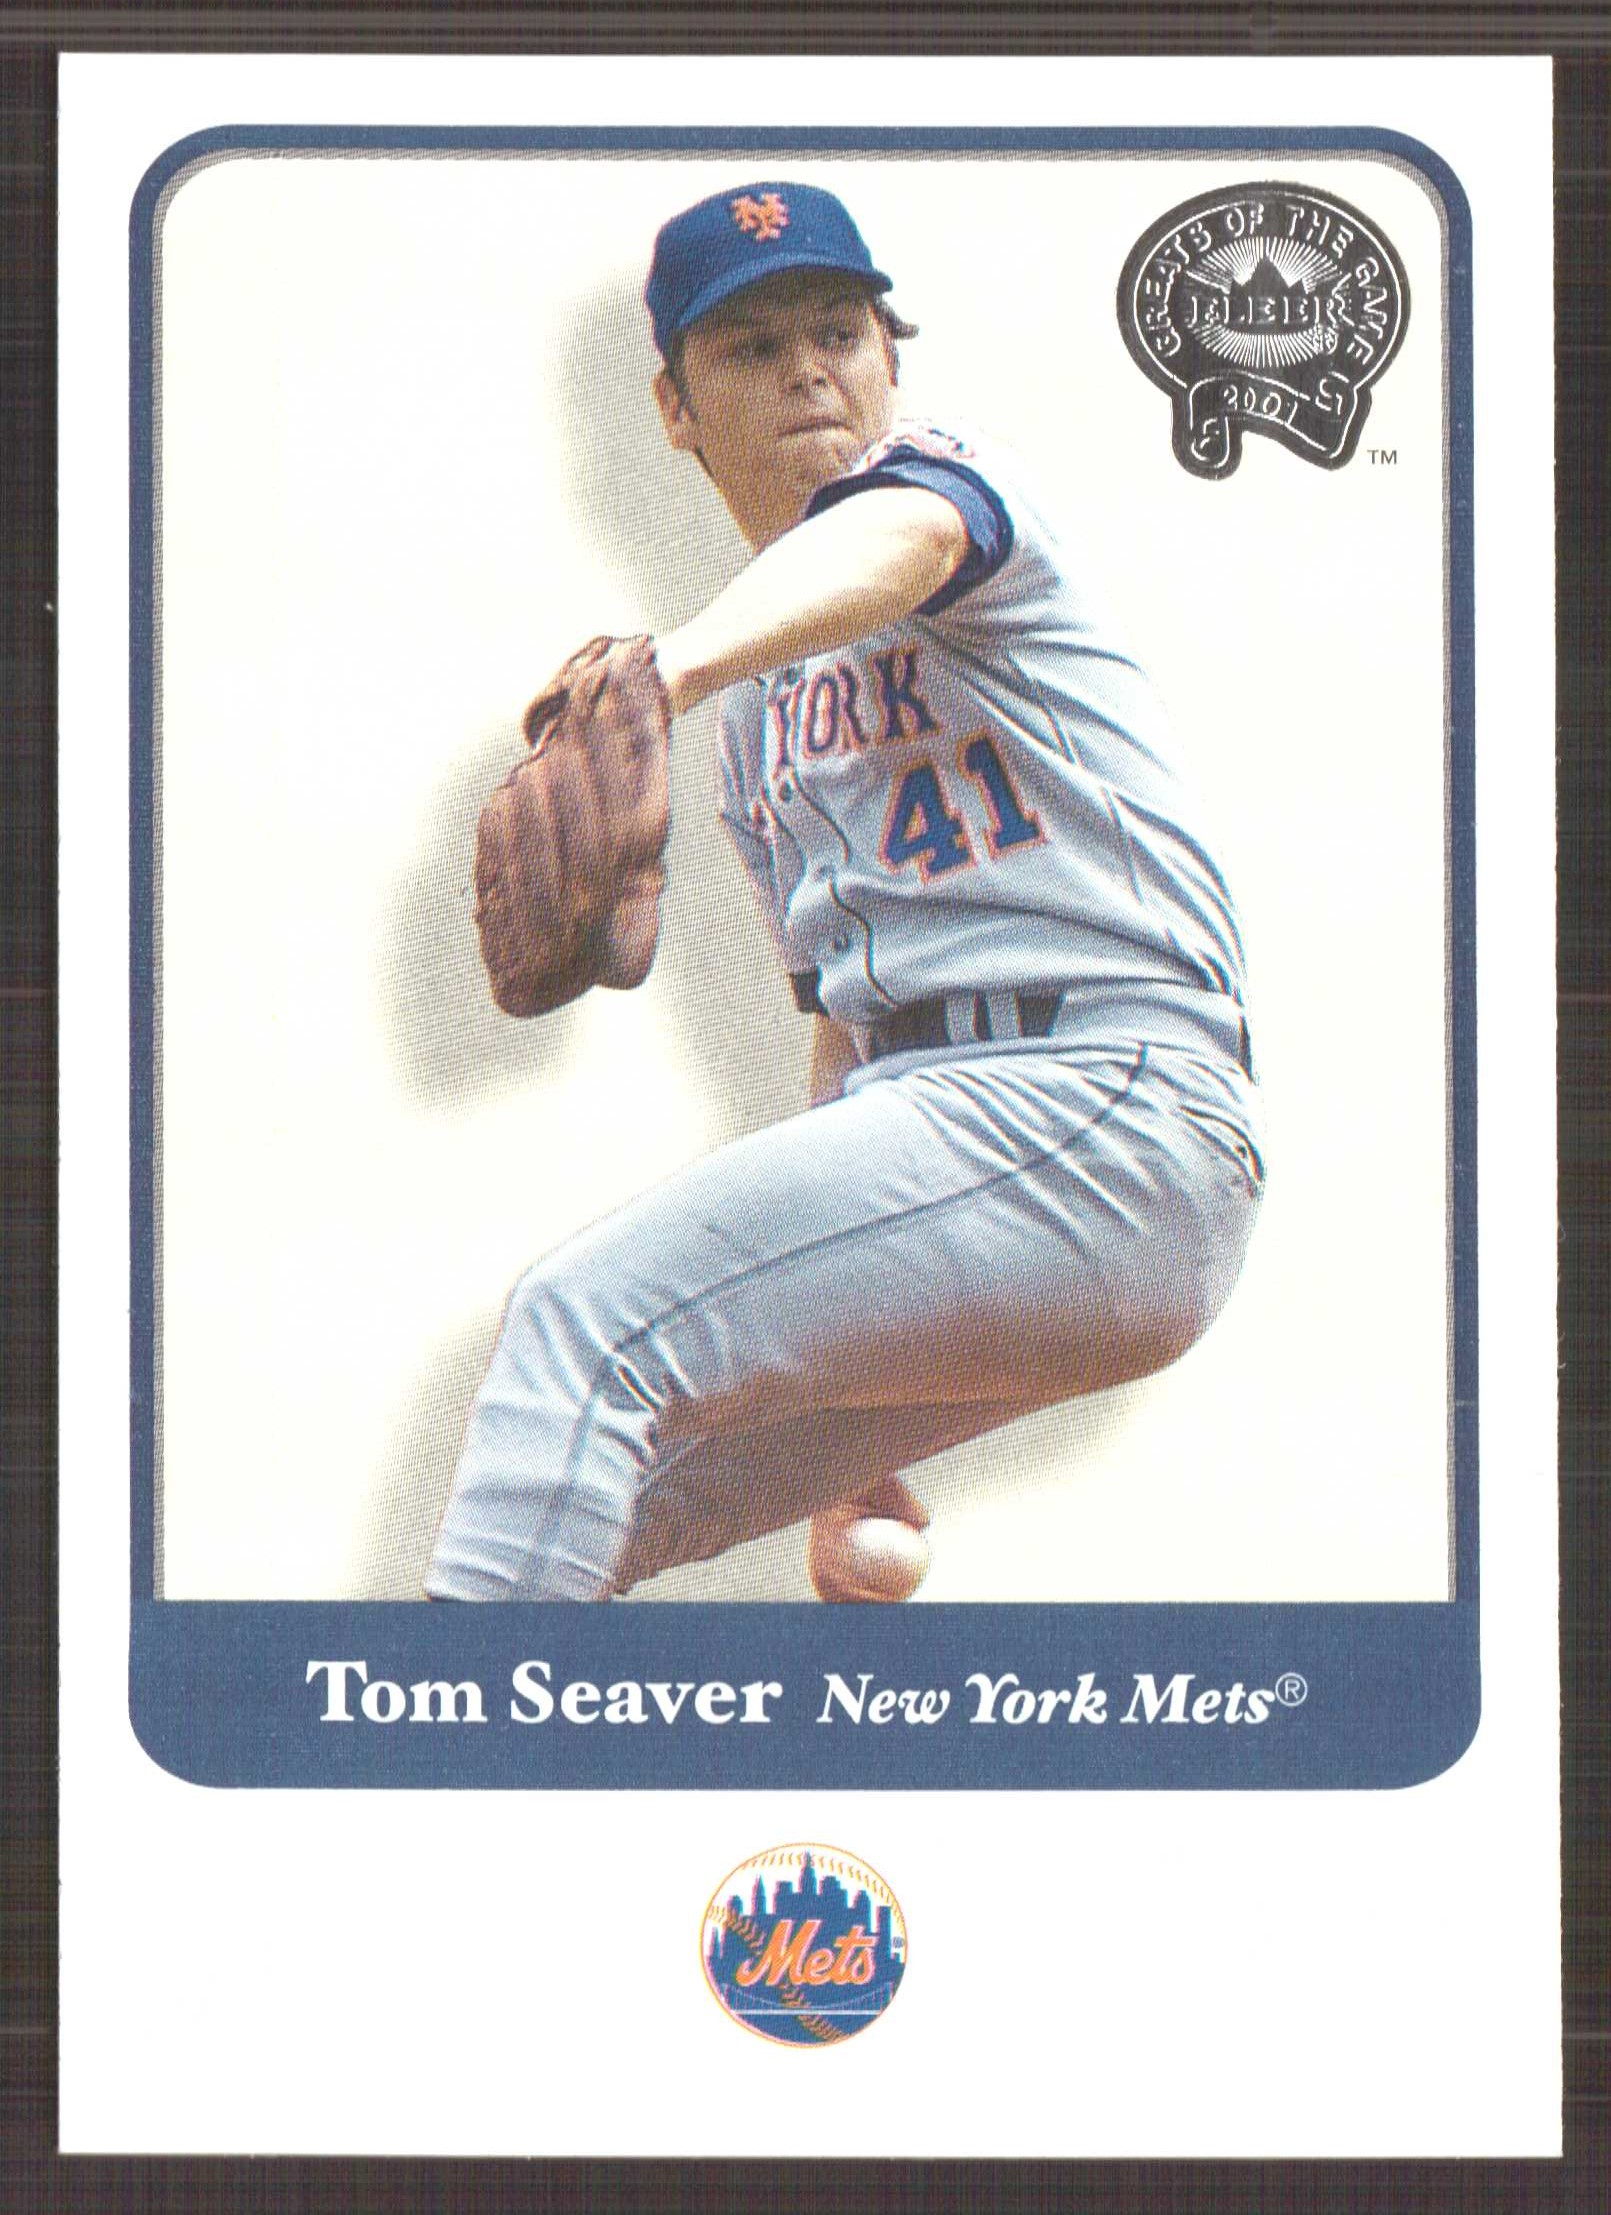 2001 Greats of the Game #89 Tom Seaver front image